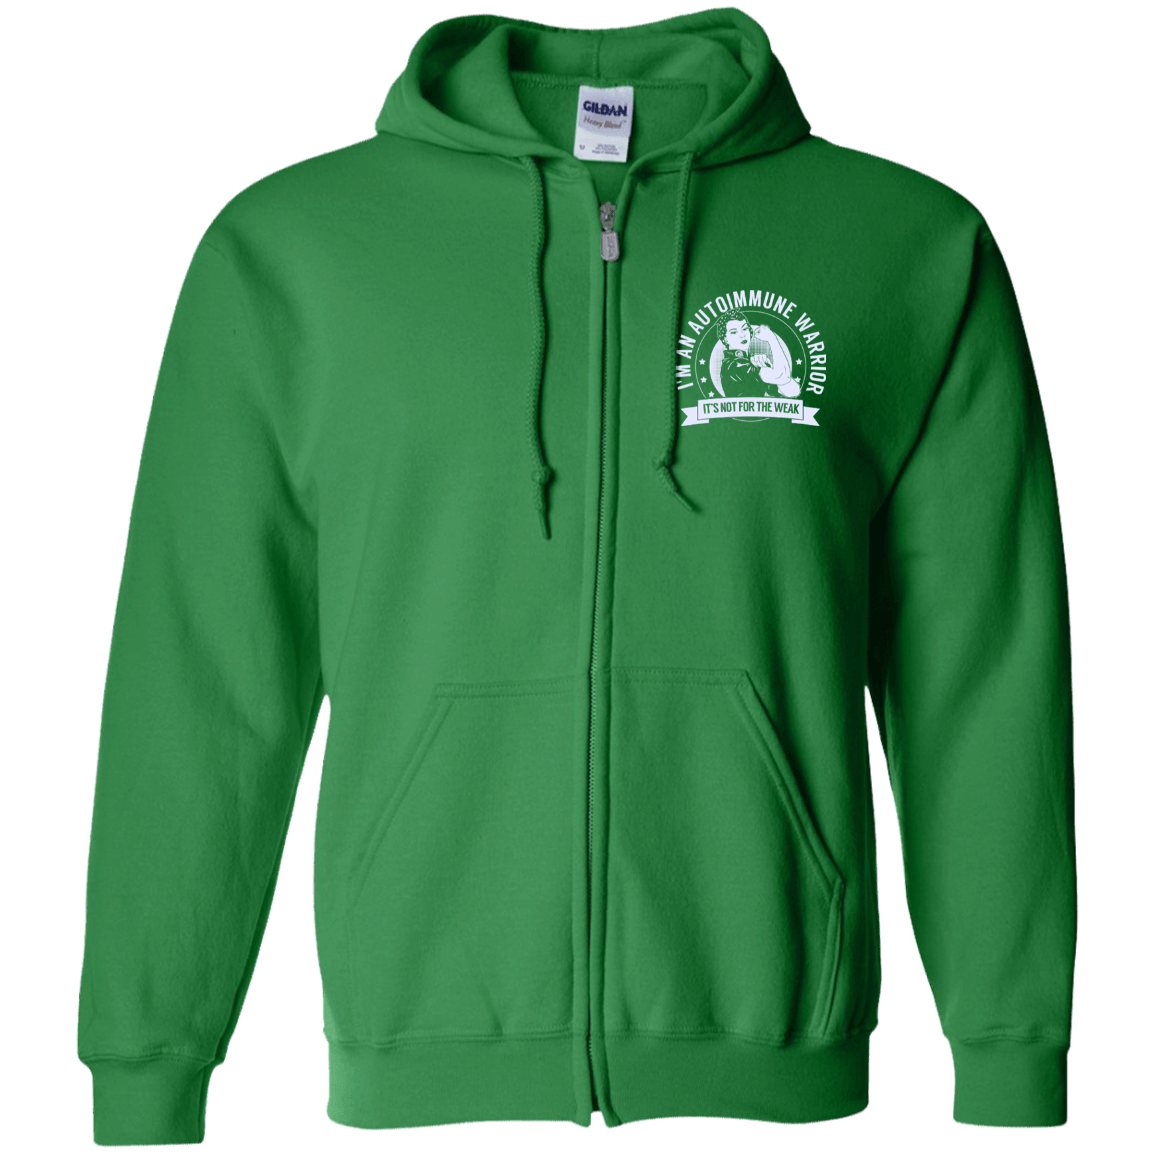 Sweatshirts - Autoimmune Warrior NFTW Zip Up Hooded Sweatshirt